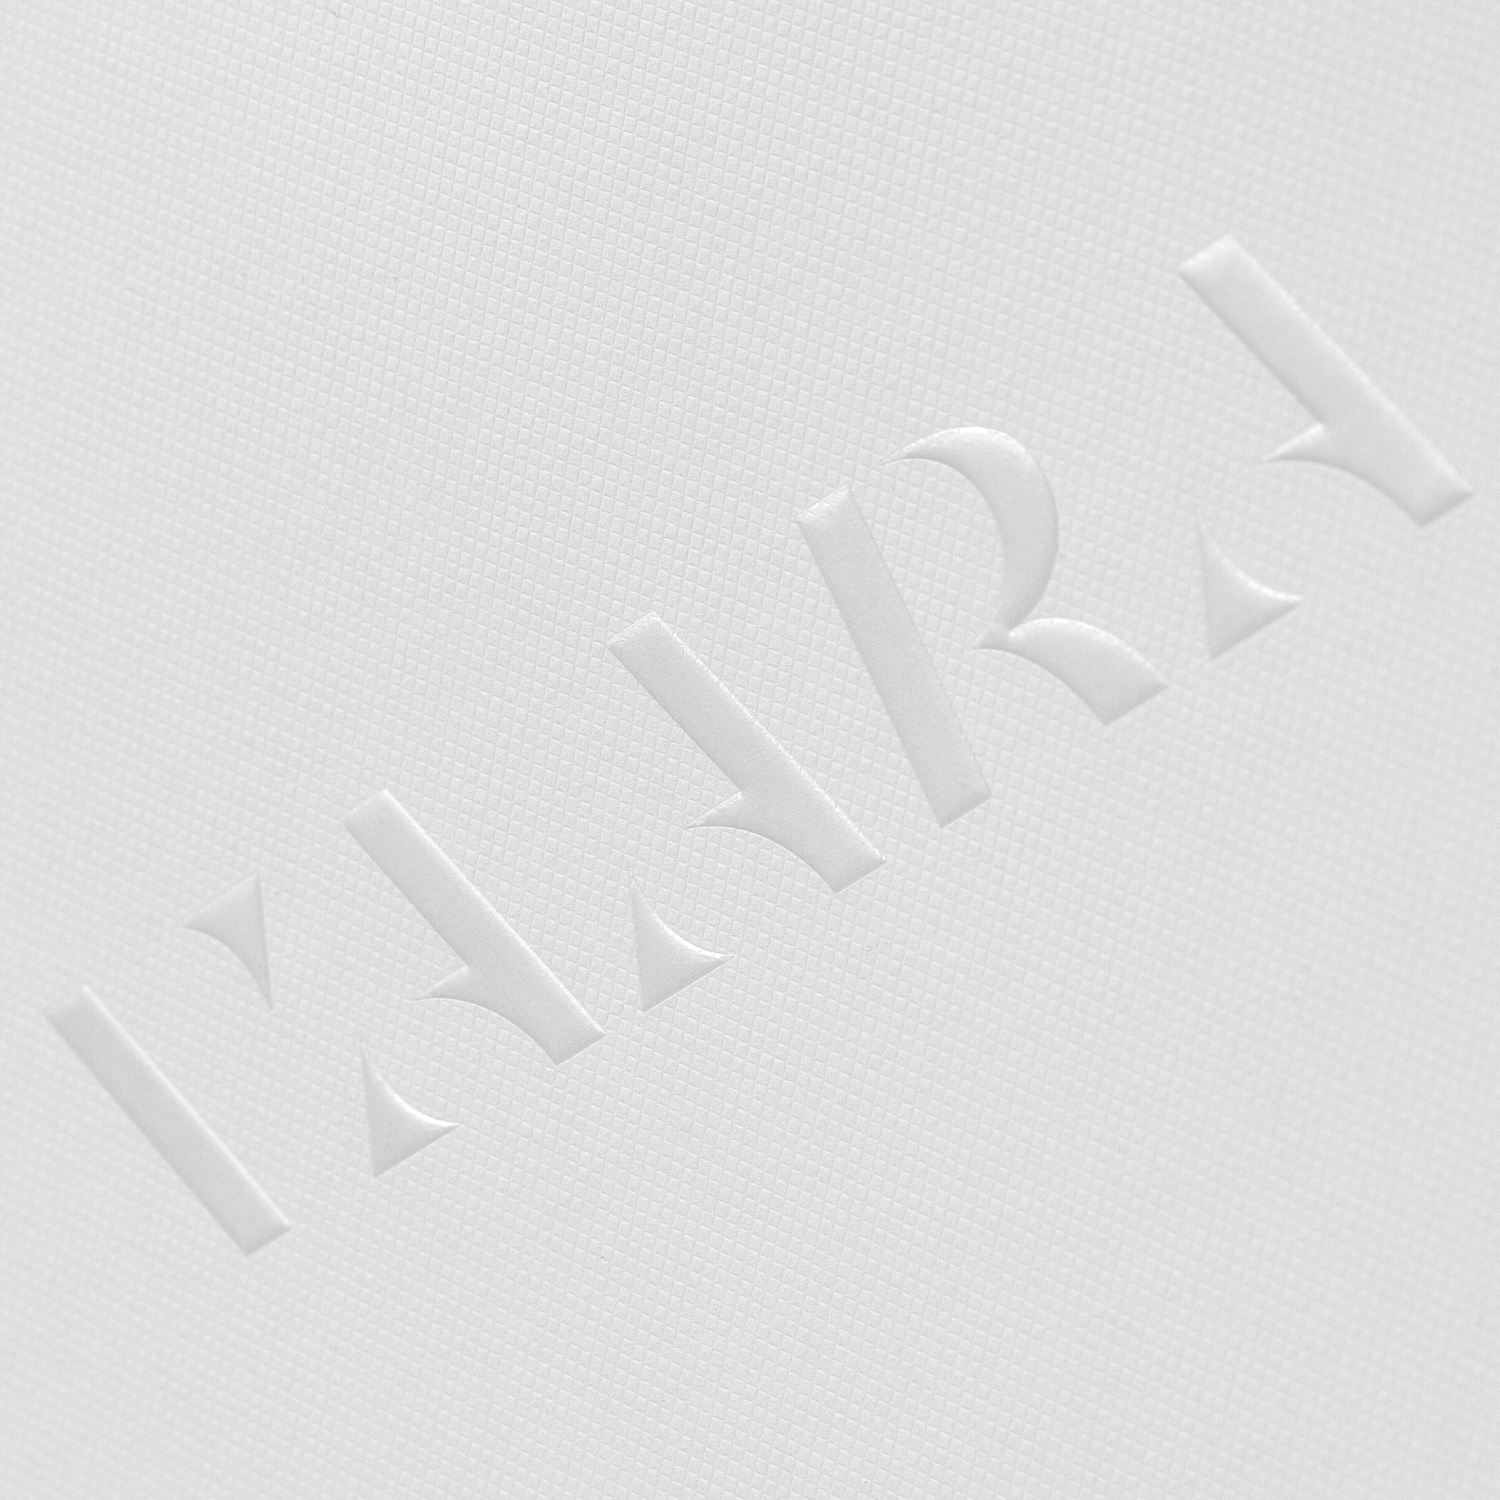 Progress Packaging Vaara Ecommerce Boxes Luxury Folding Fluted Foil Textured Paper